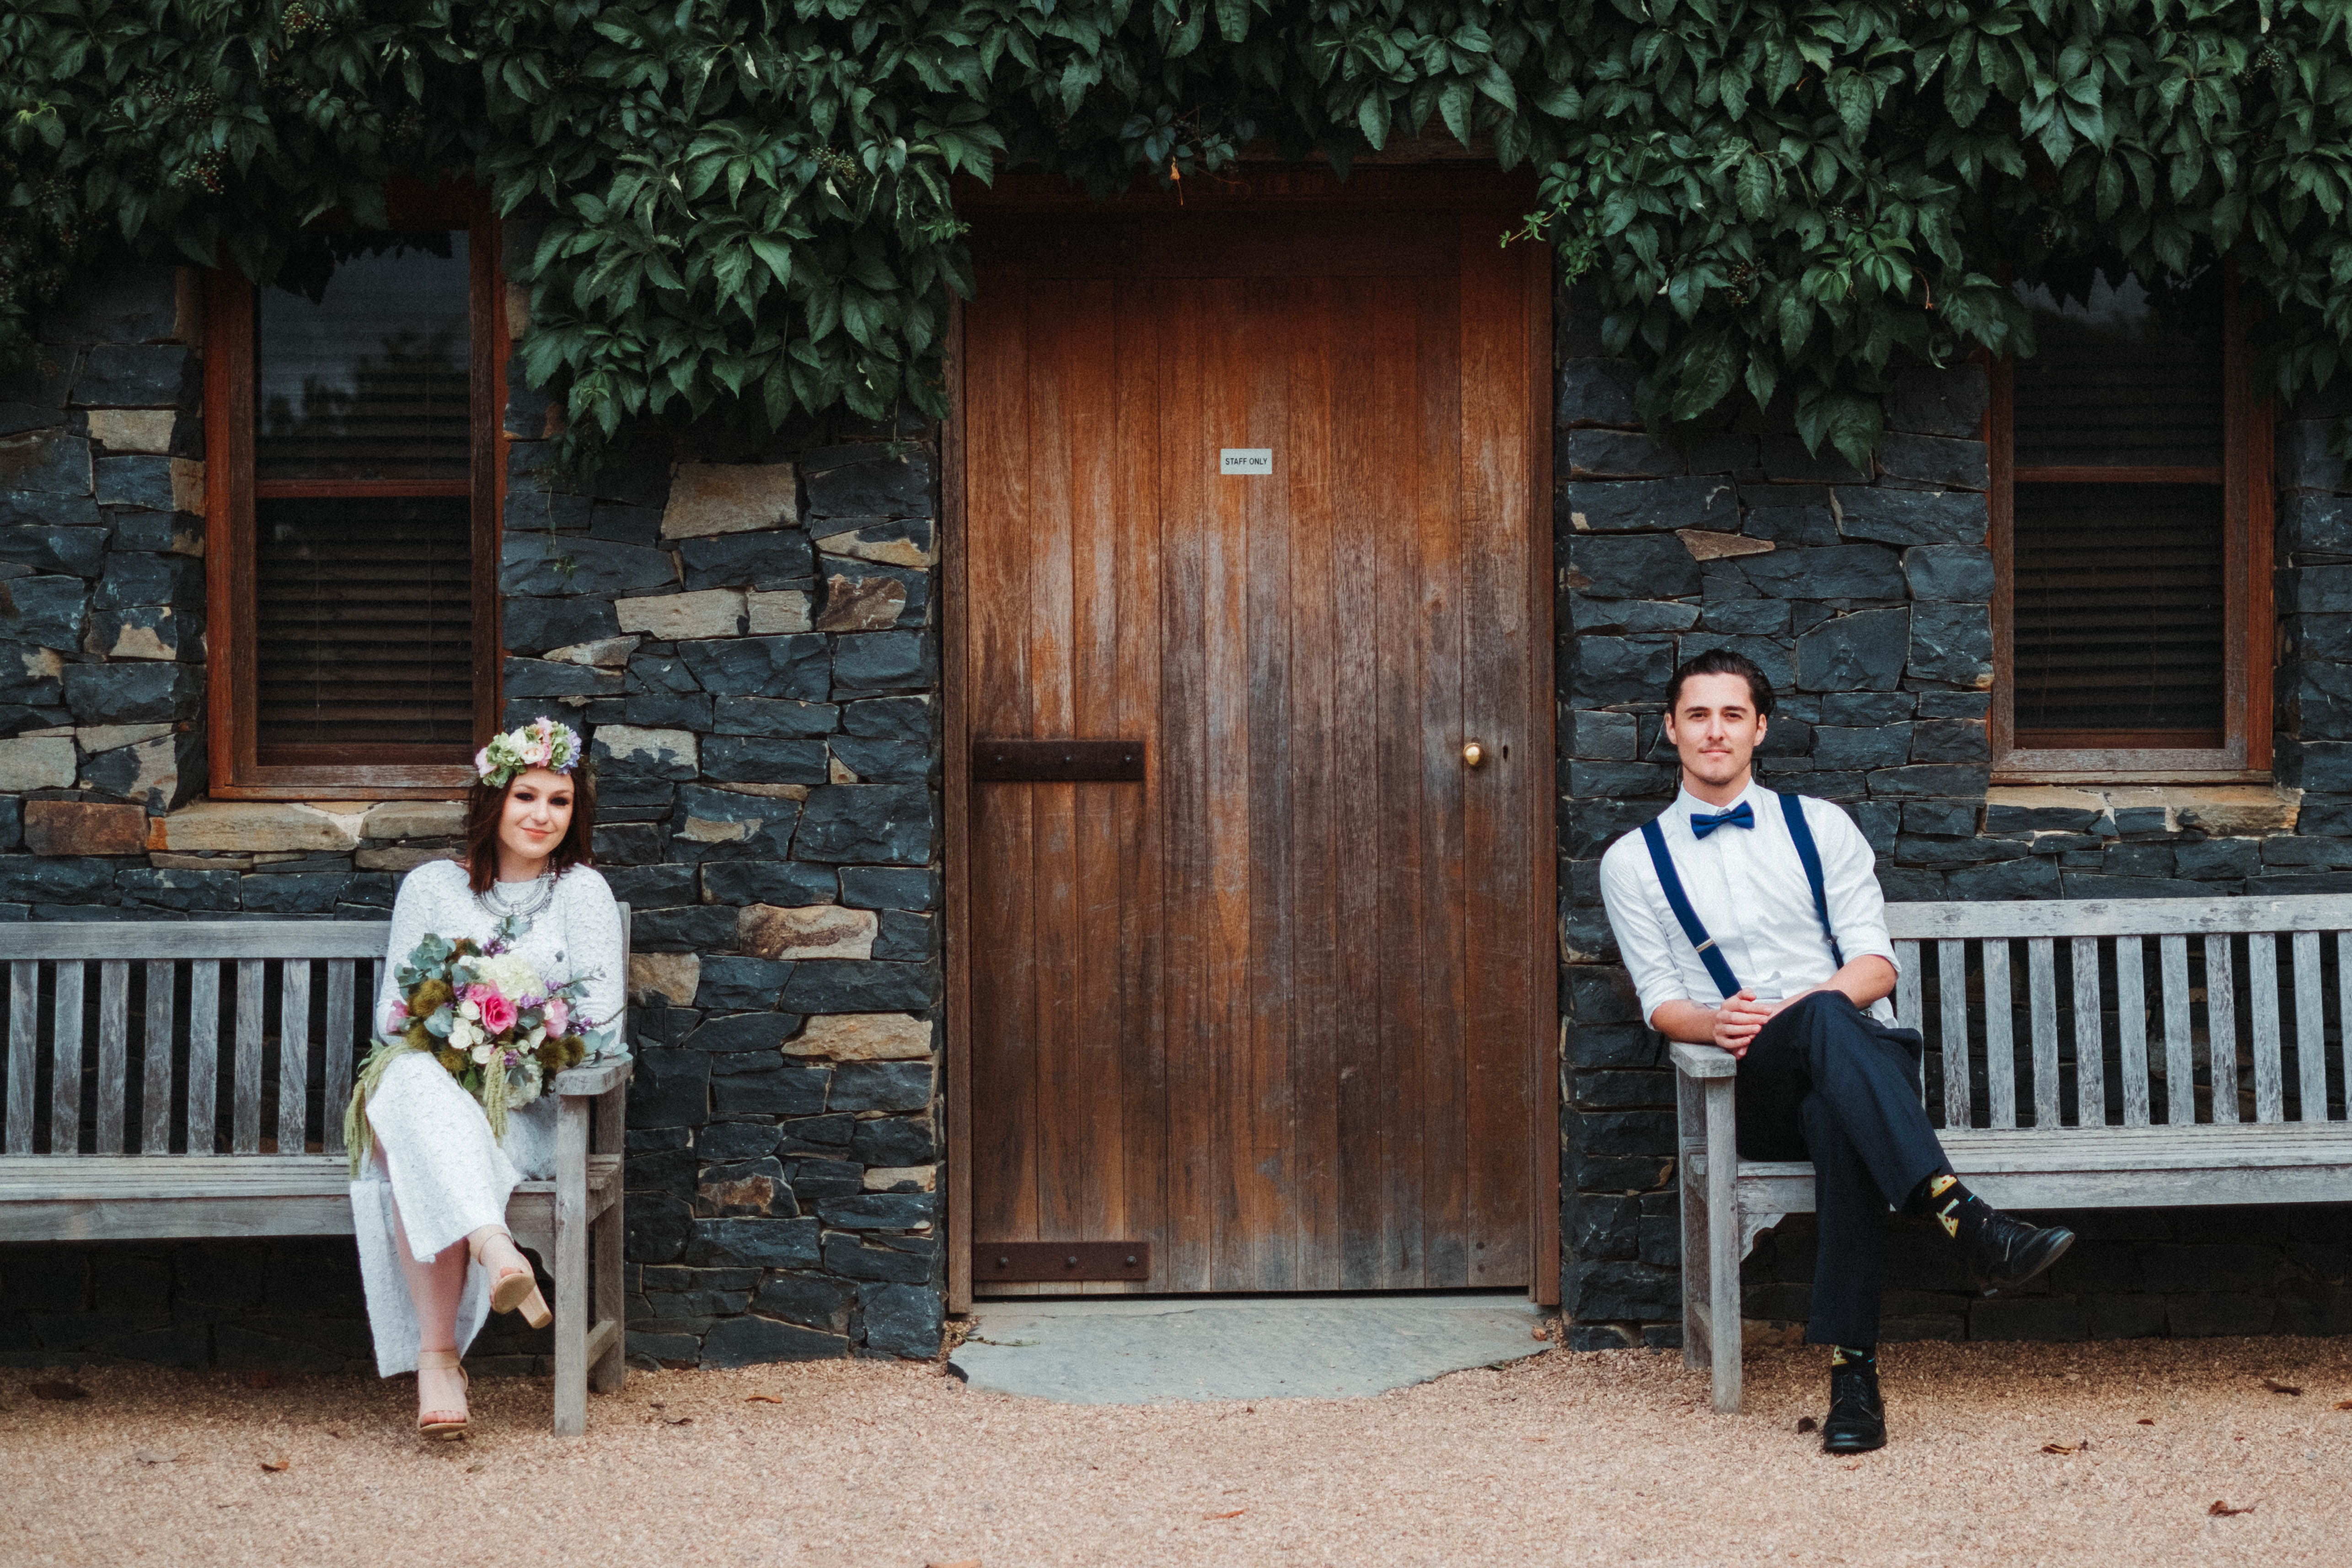 Weddings at Mayfield in Oberon NSW